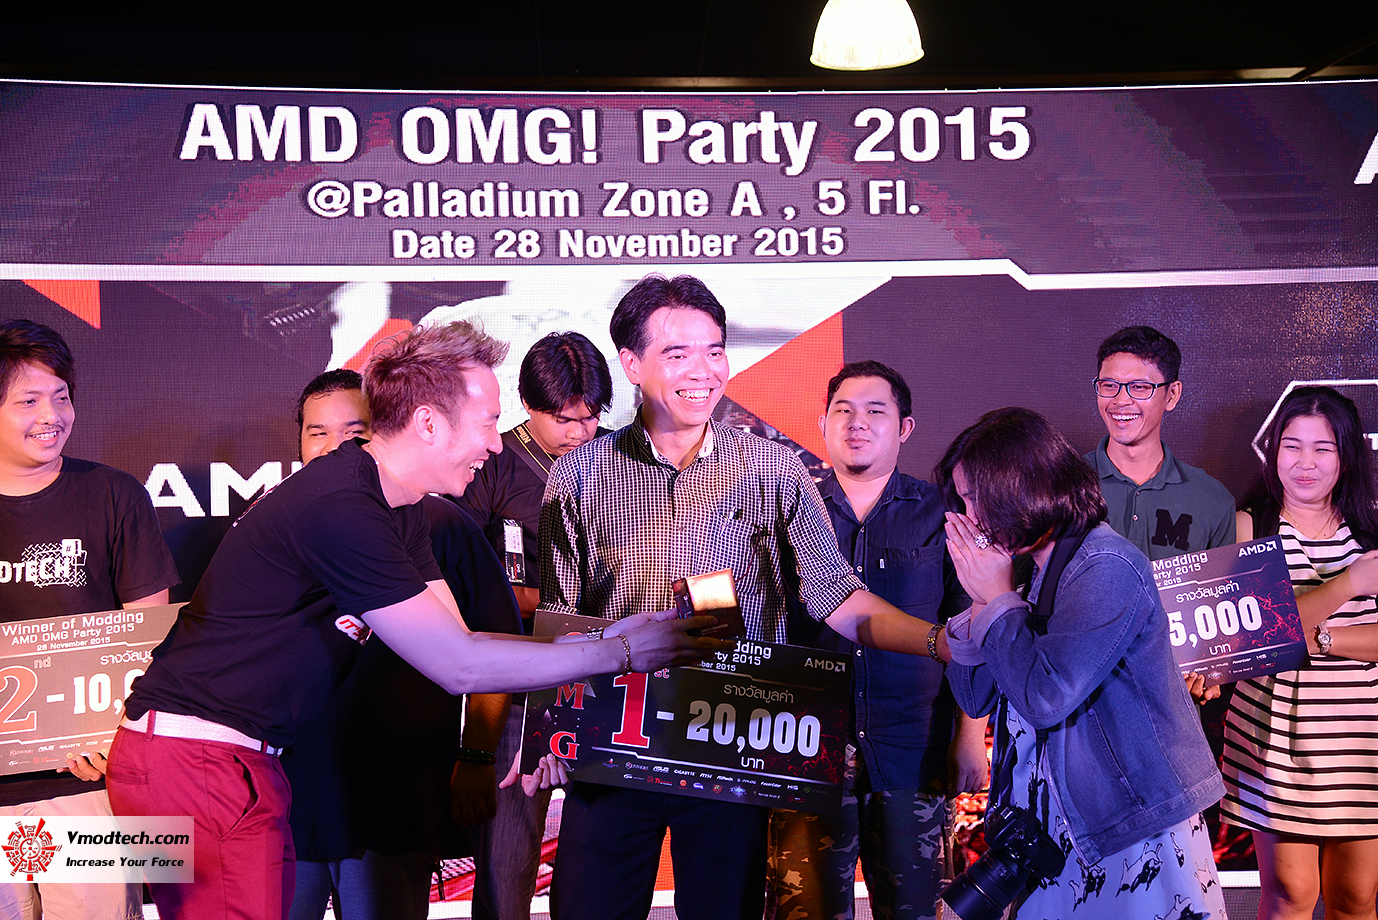 dsc 8114 AMD OMG! Party 2015 (AMD Overclock Modding Gaming Party 2015)